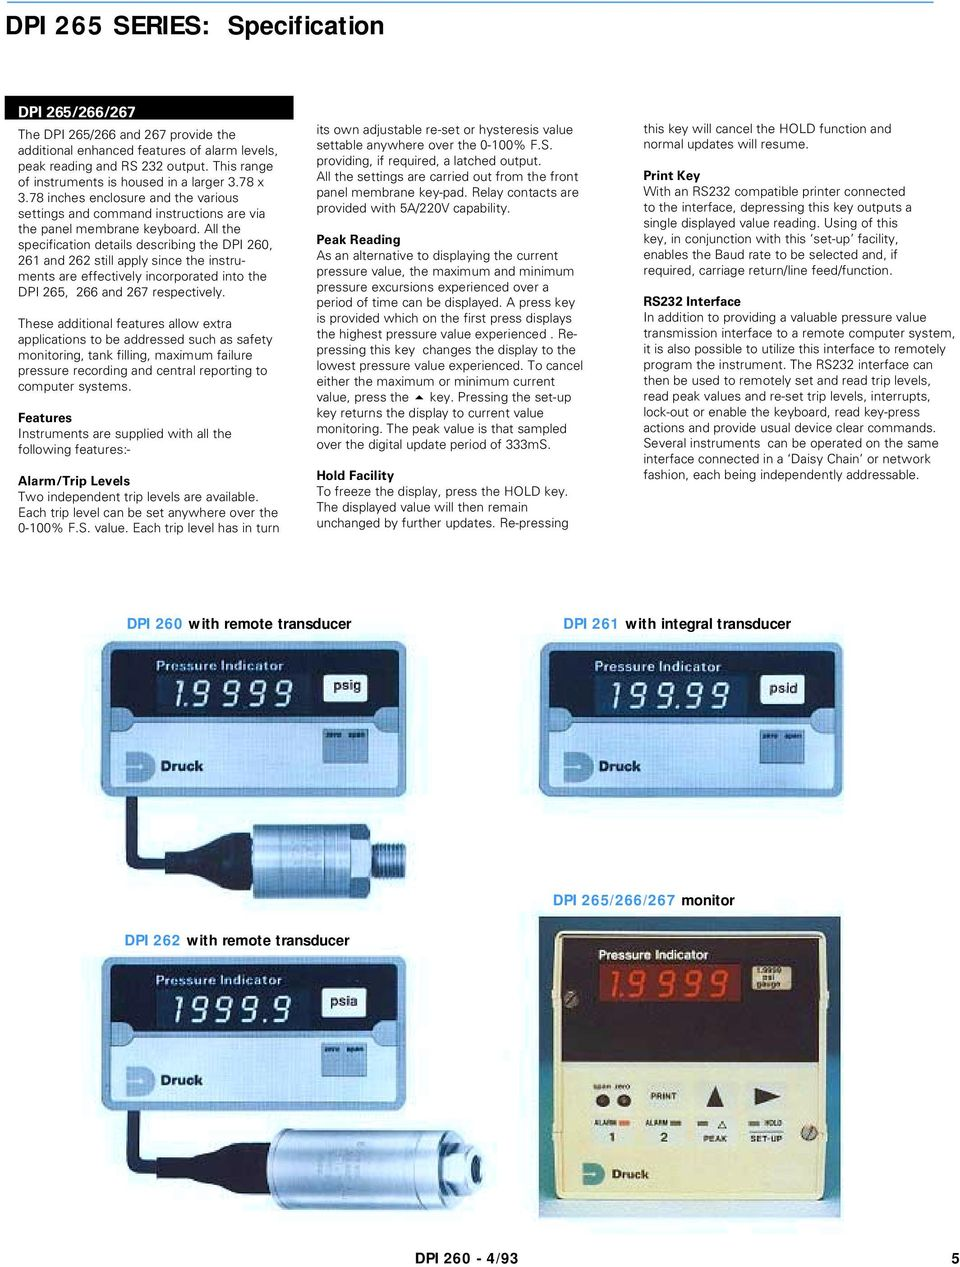 All the specification details describing the DPI 260, 261 and 262 still  apply since the